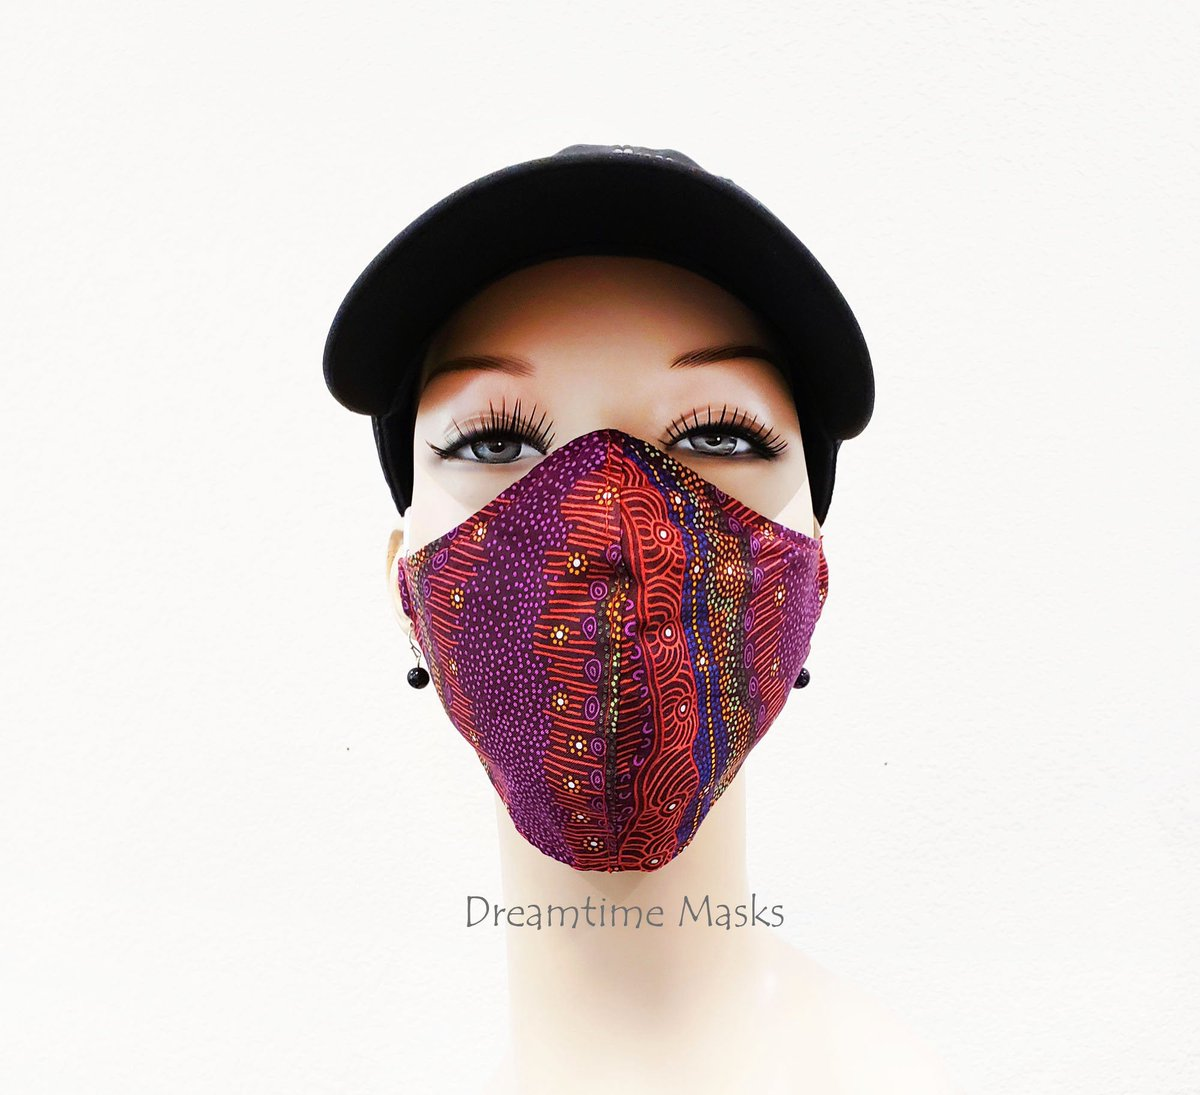 Red Face Mask Fitted Over the Head Adjustable Blue Face Covering Colorful Aboriginal Art Print Scarlet Crimson Ruby Red Print https://t.co/pIGBk3V4Qs #staysafe #facemask #Etsy #wearthedammmask #facemasks #stayhome https://t.co/yJd9TvpAQV